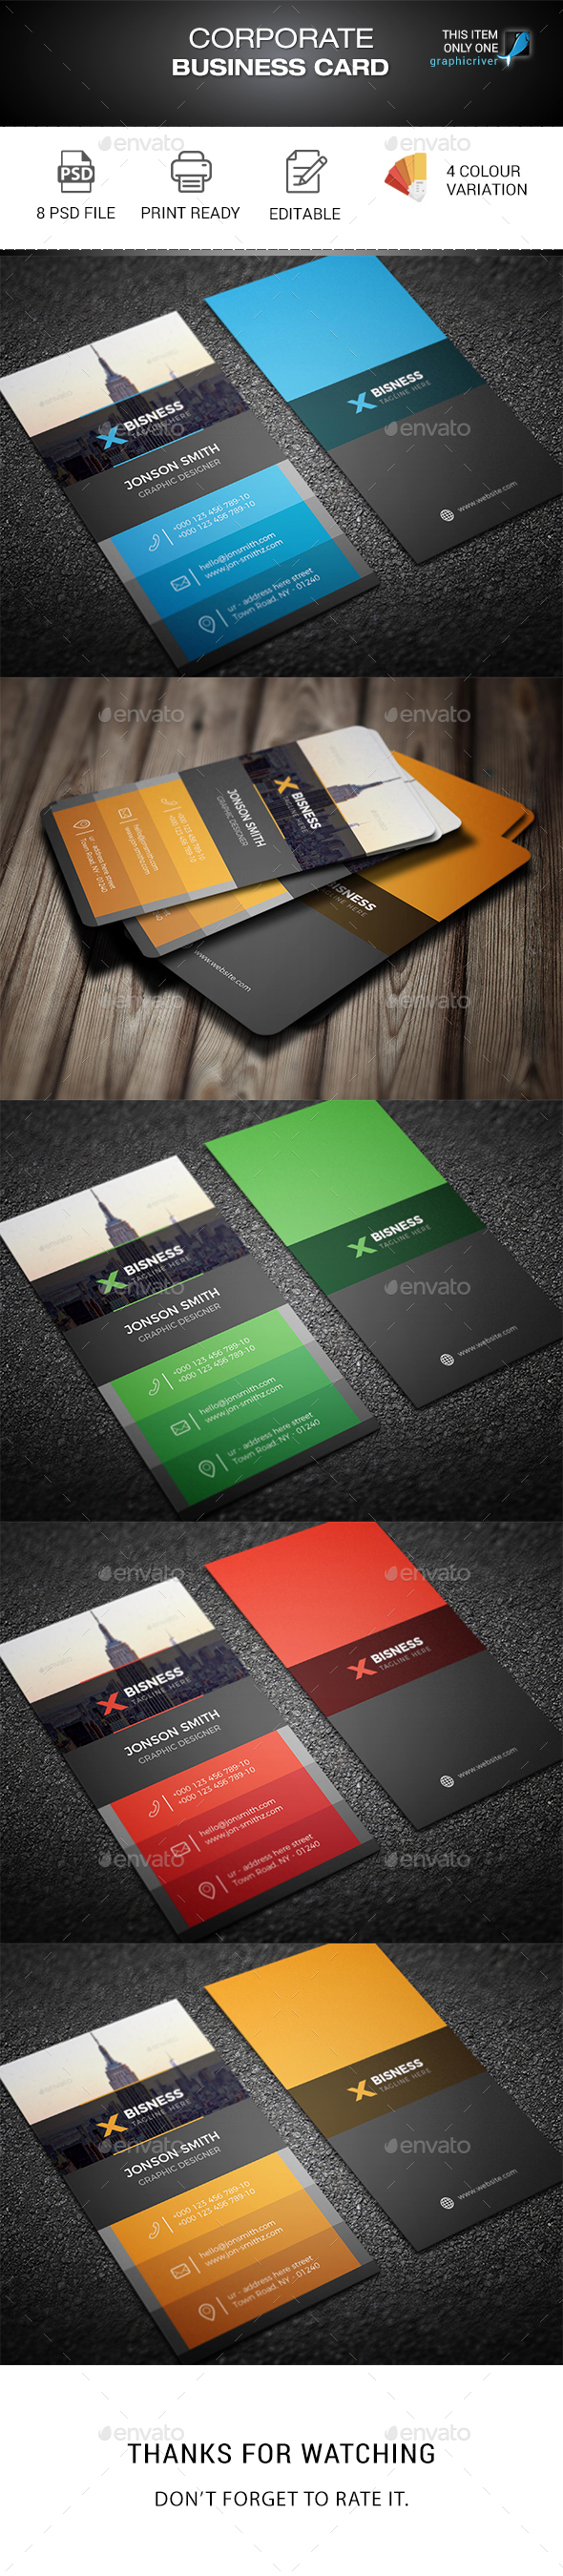 Corporate business card by madmindgraphics graphicriver corporate business card corporate business cards magicingreecefo Choice Image